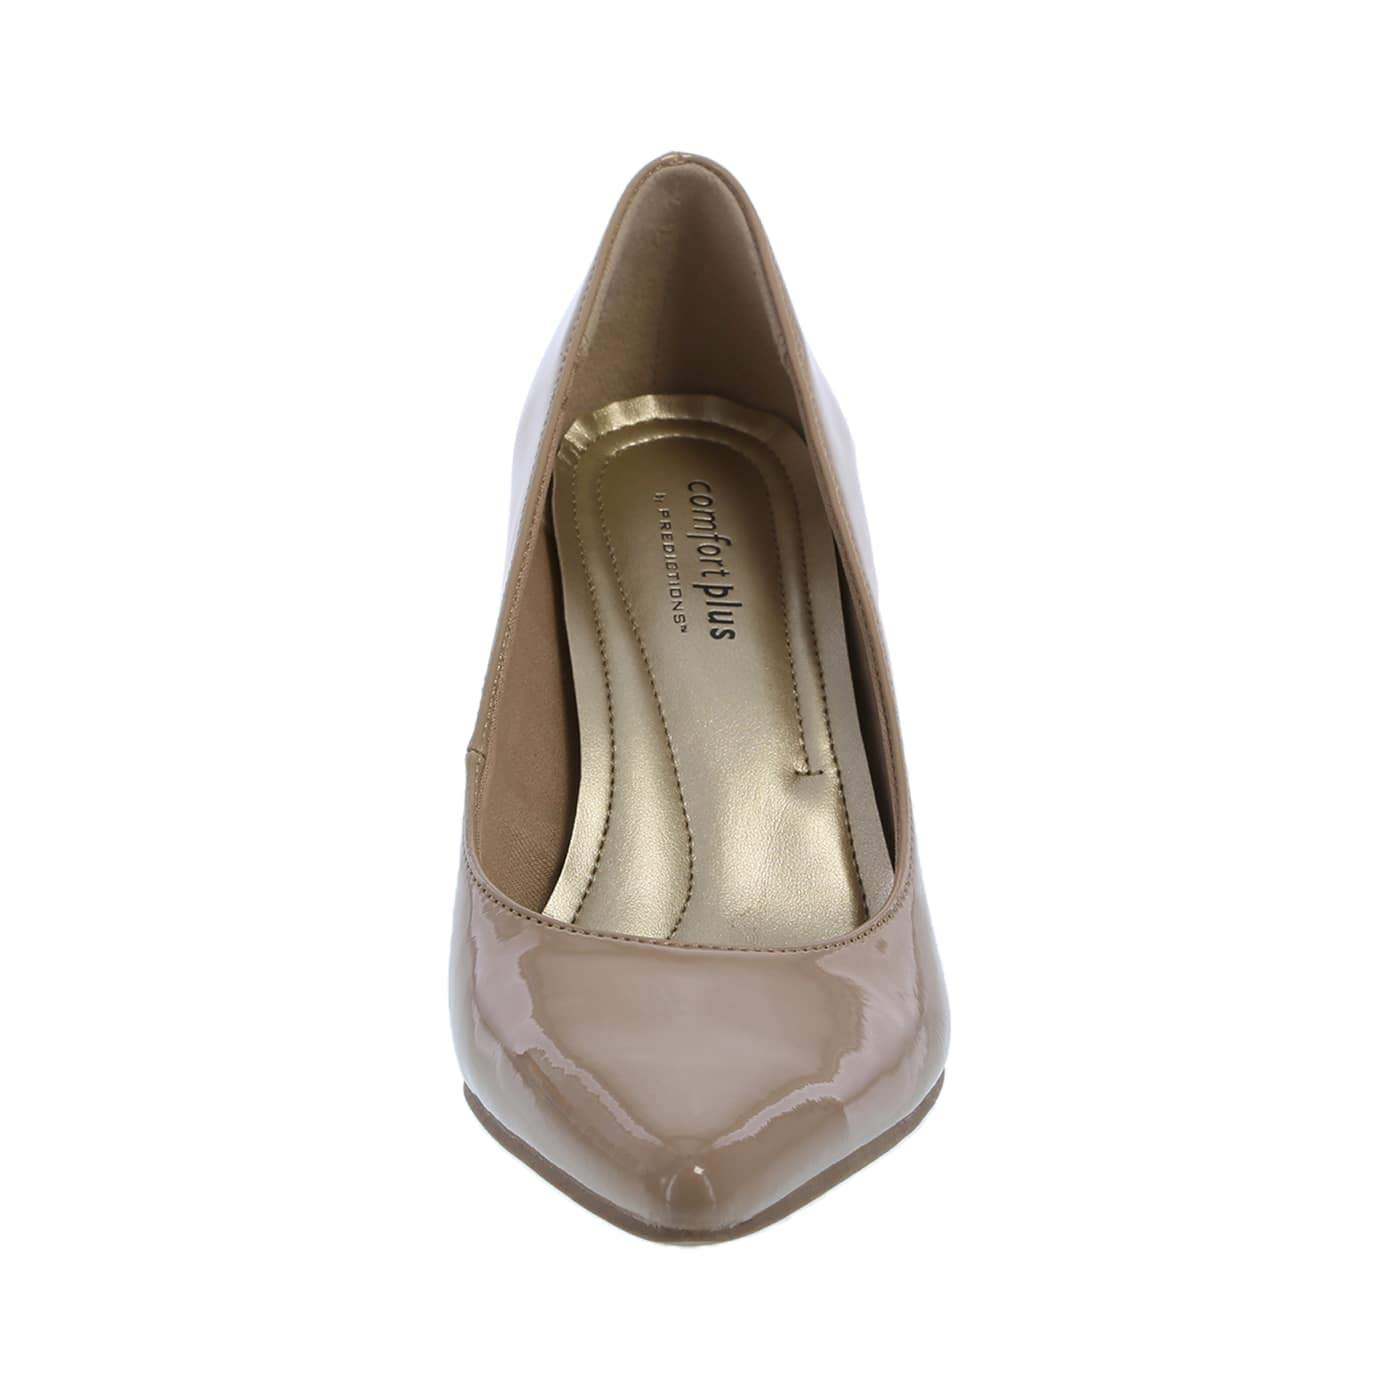 Comfort Shoes Women's Shoes Comfort Plus Wide Fit Shoes Size 7 Numerous In Variety